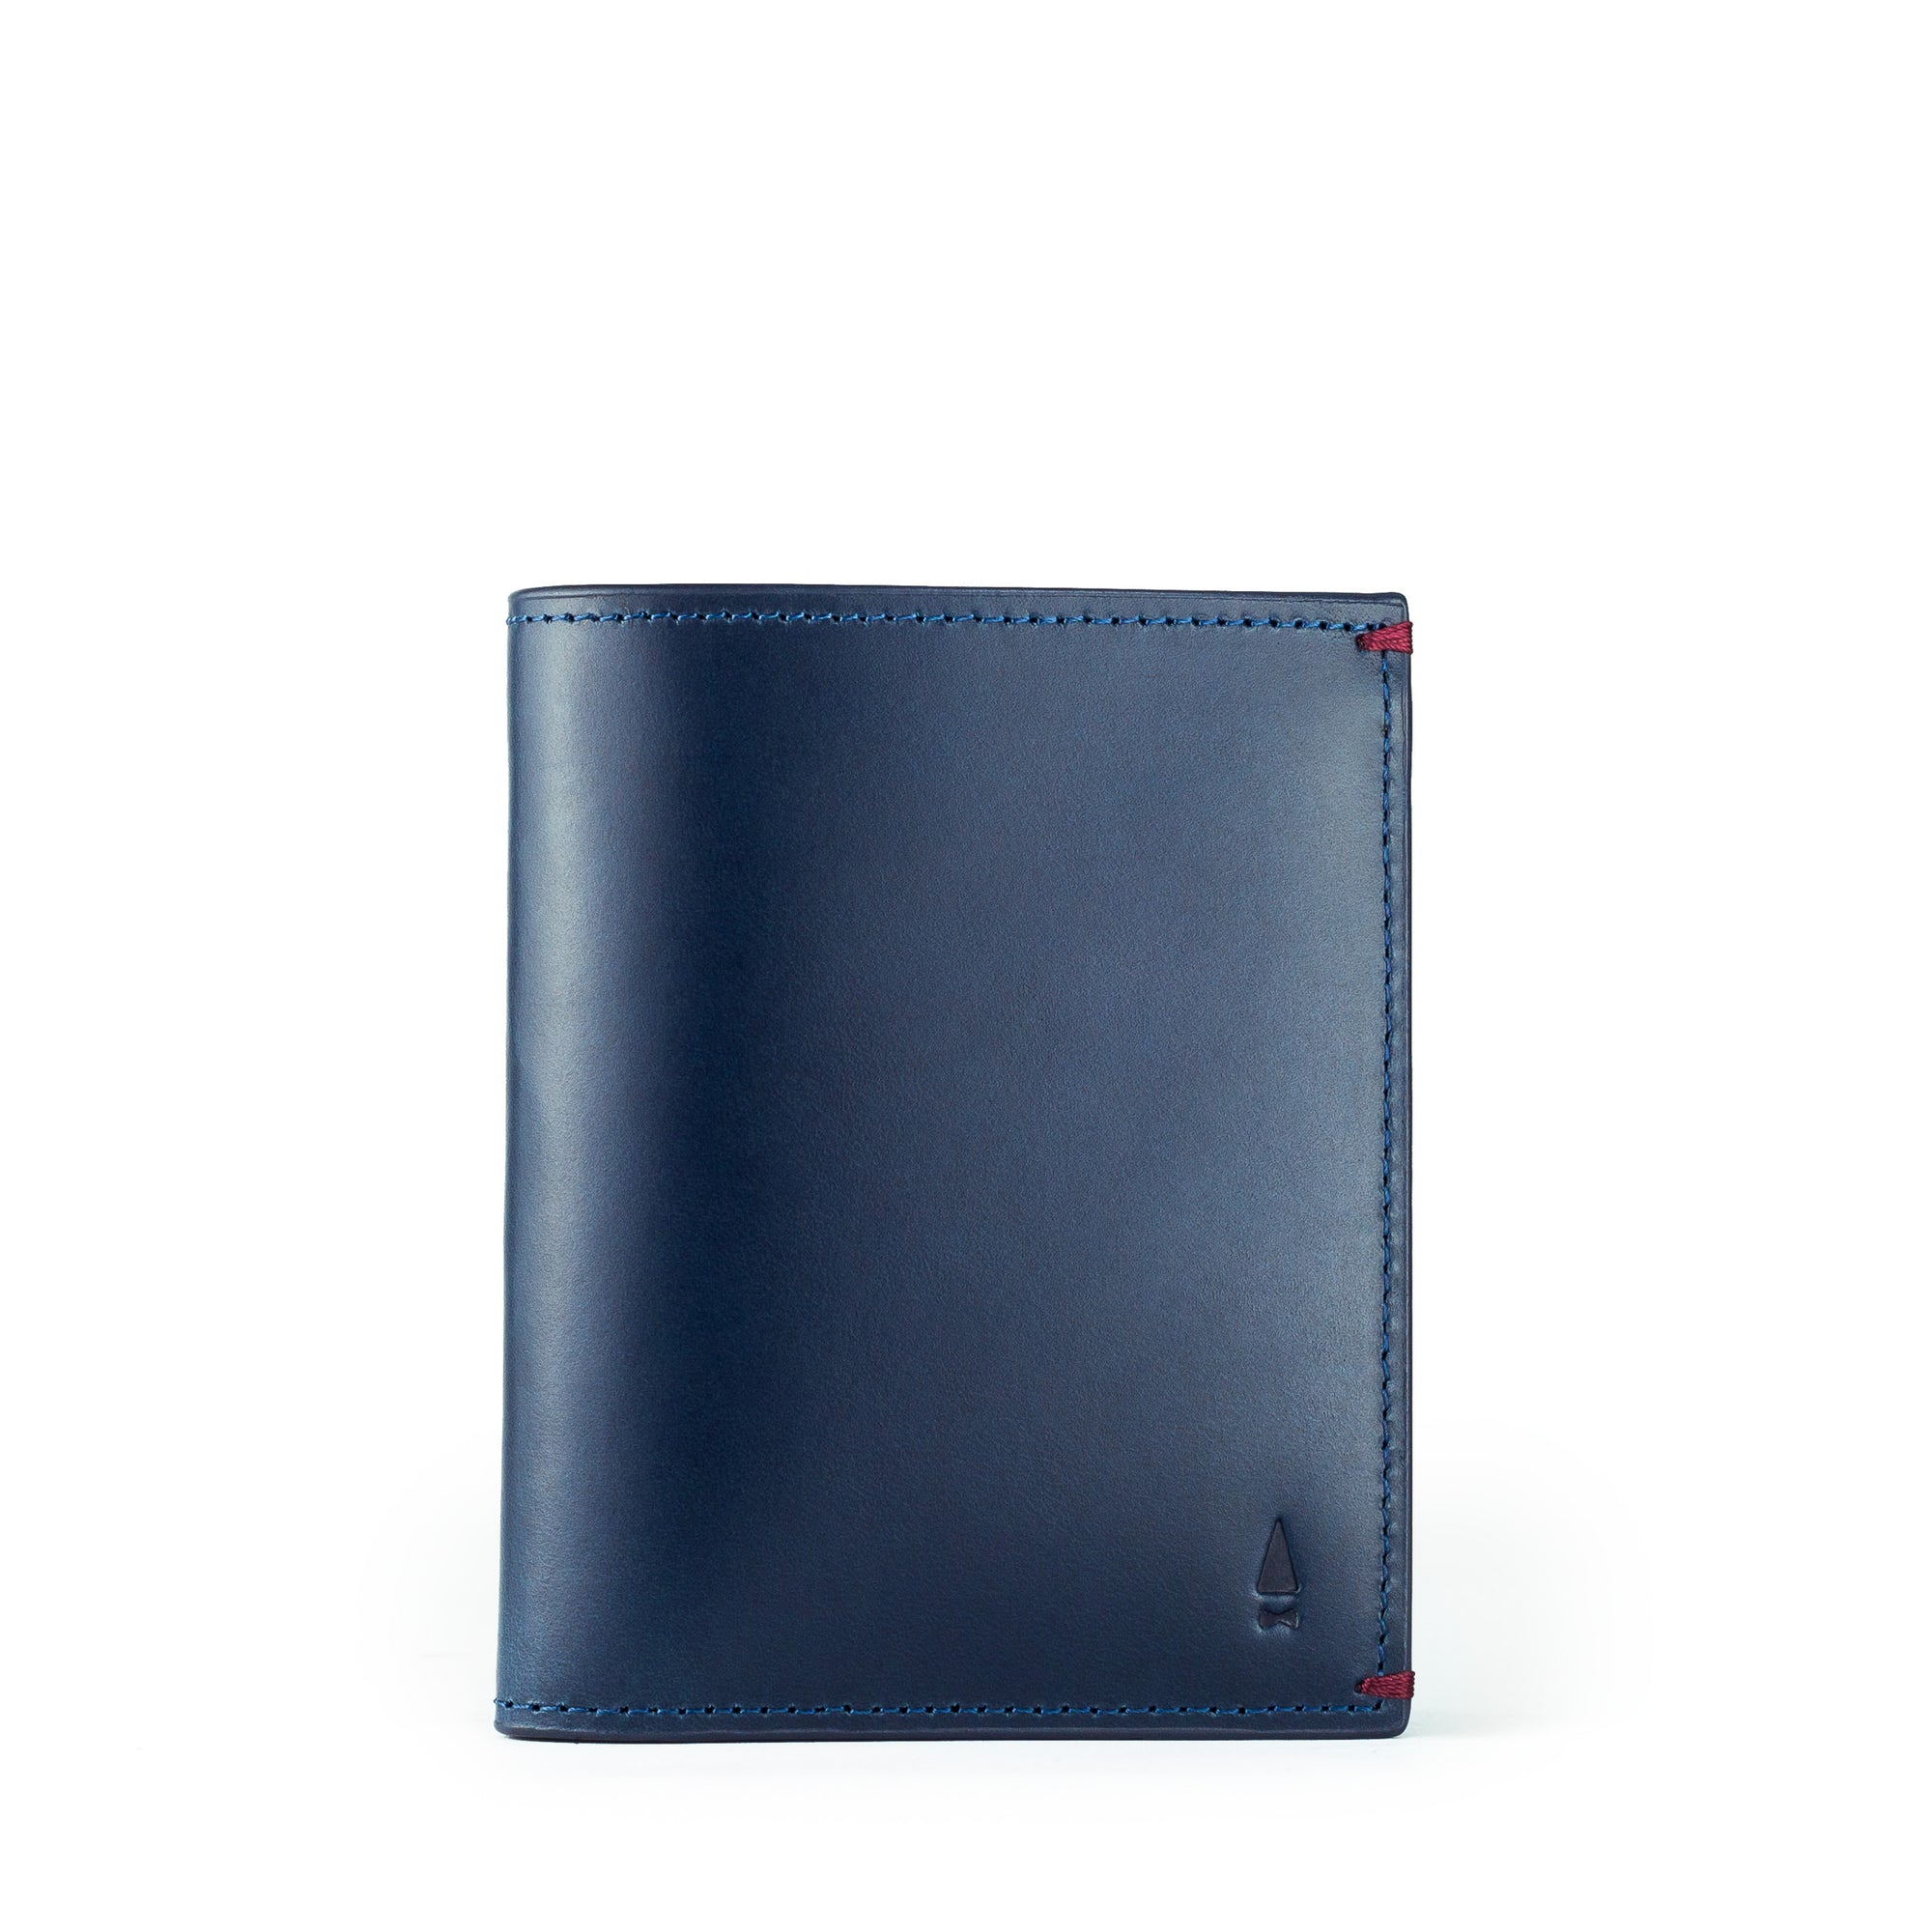 Griffin Compact Coin Billfold Wallet (RFID)